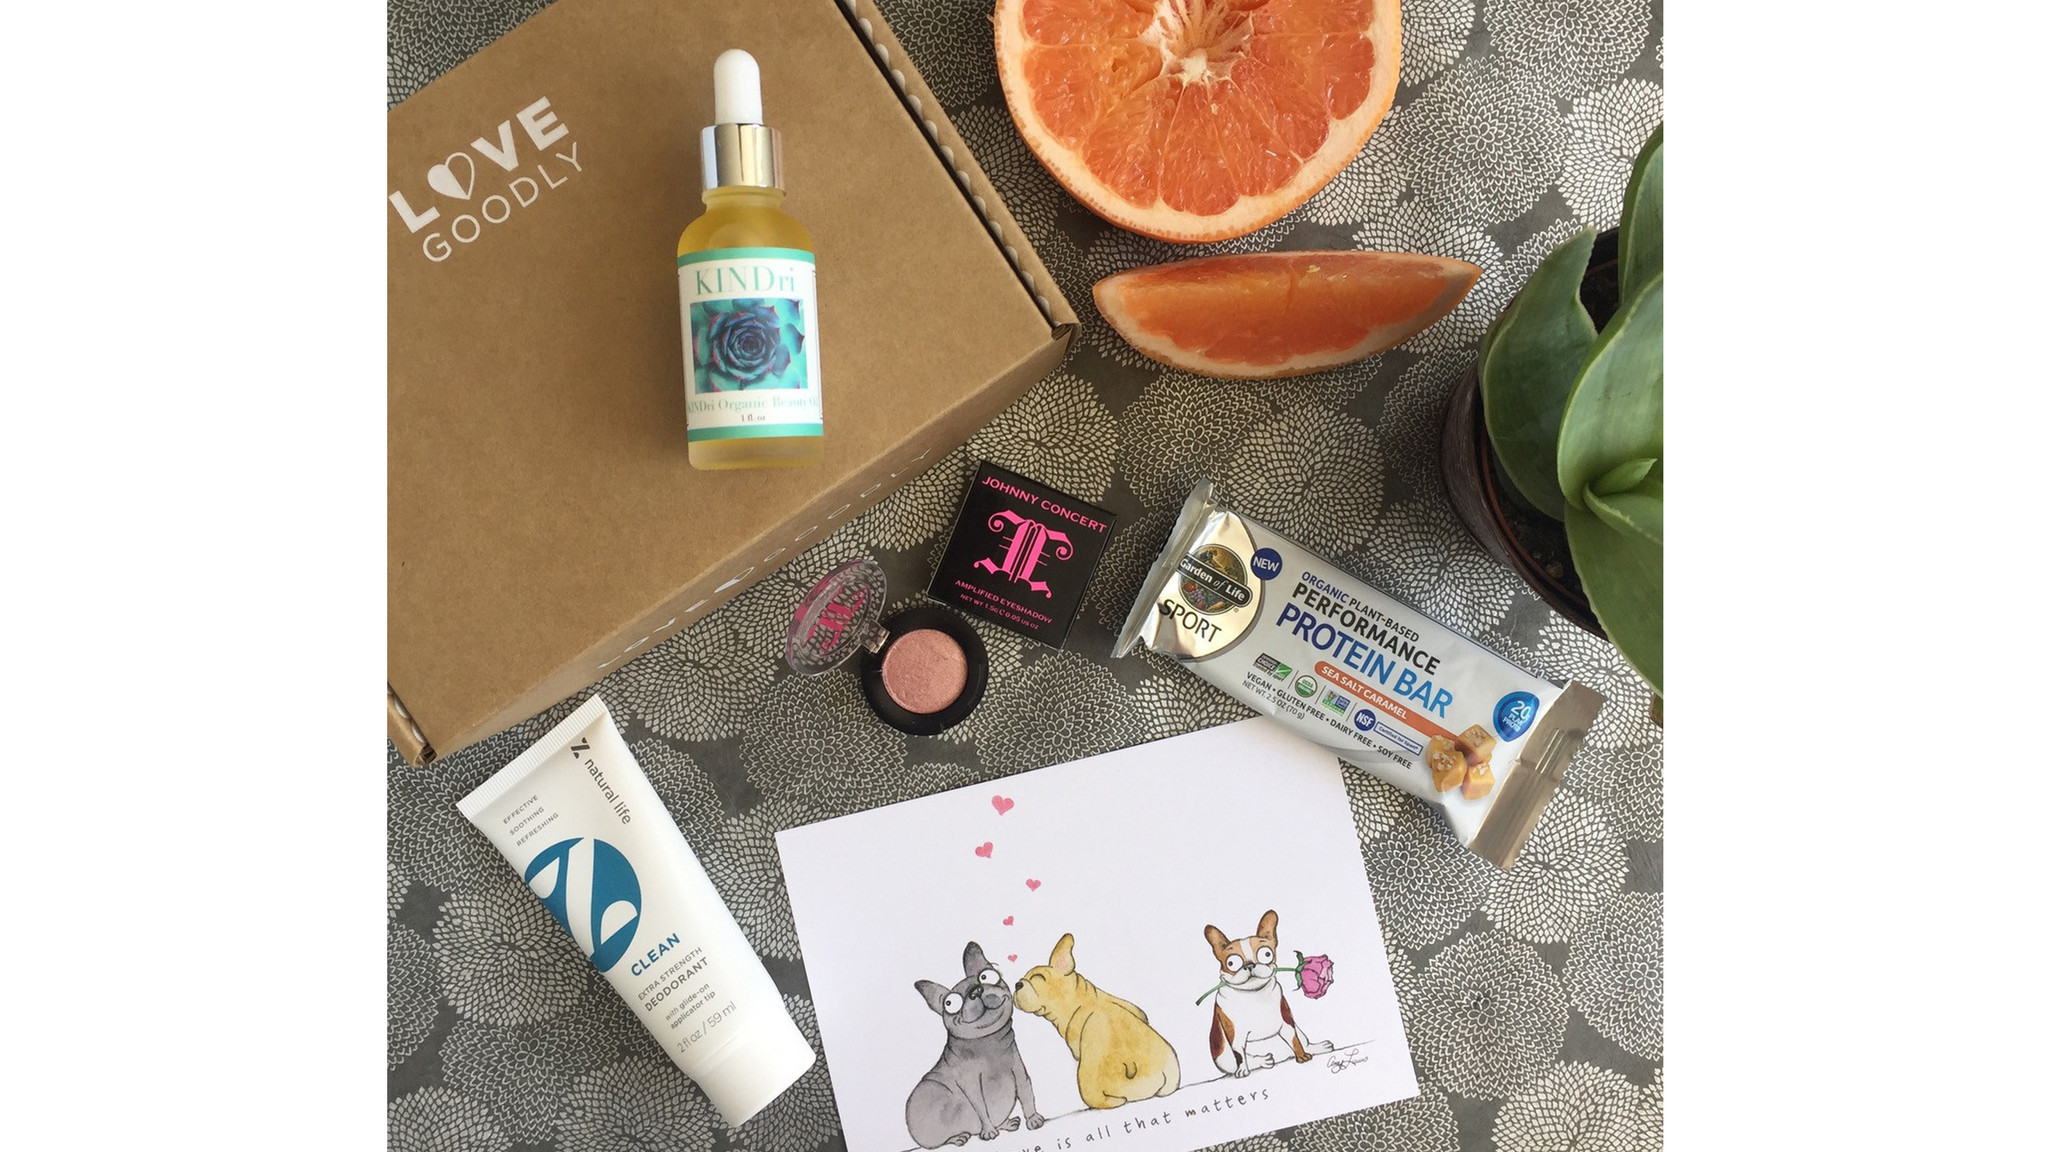 Subscription box Love Goodly features natural/organic beauty and wellness products with its every-other-month delivery. The beauty box is $29.95, lovegoodly.com.